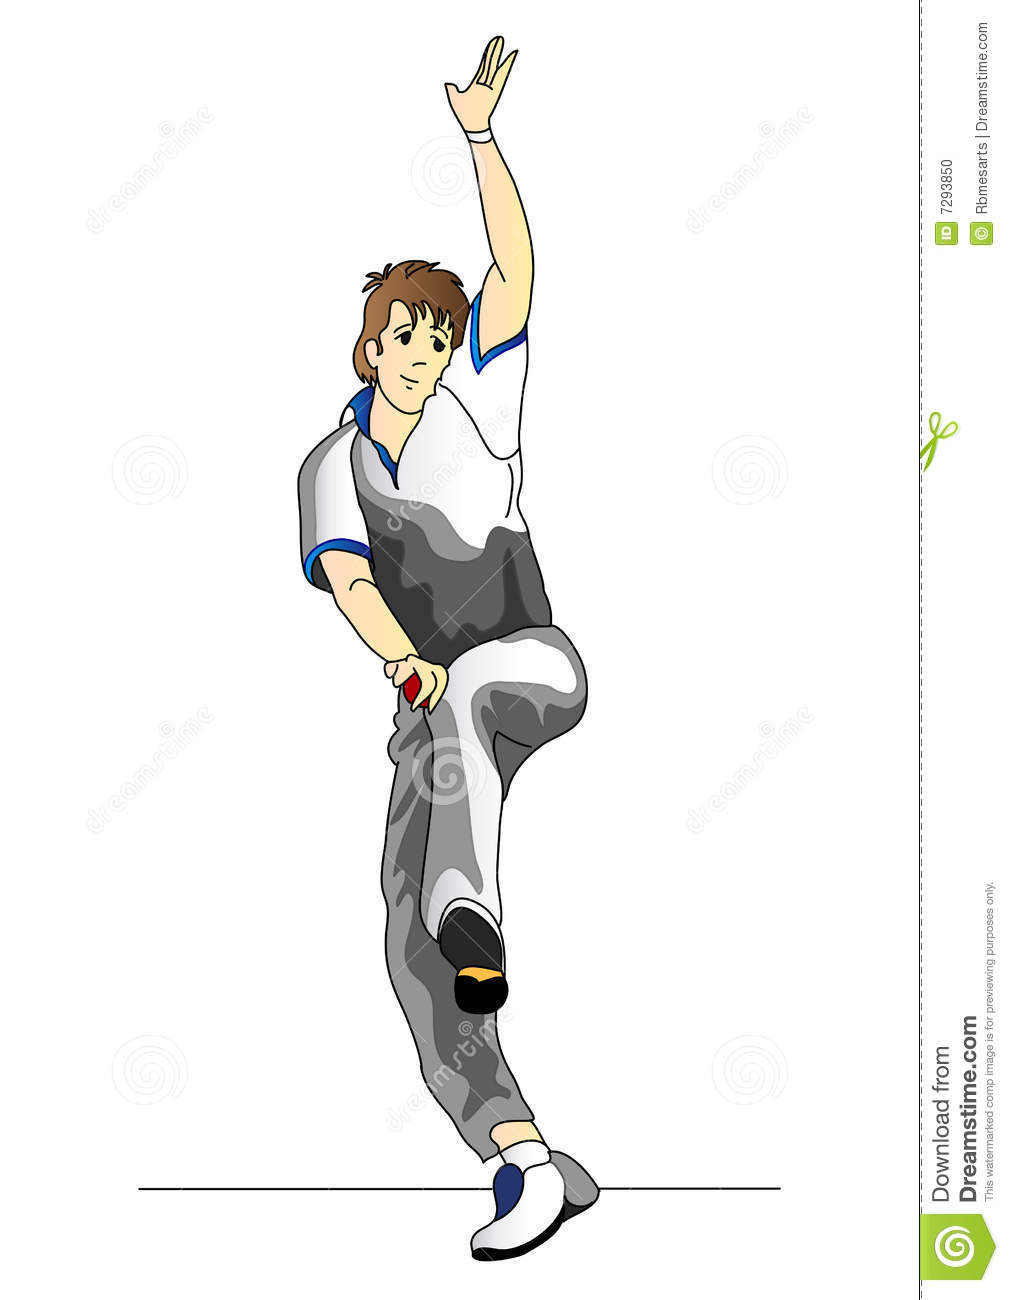 Cricket bowler clipart 9 » Clipart Station.